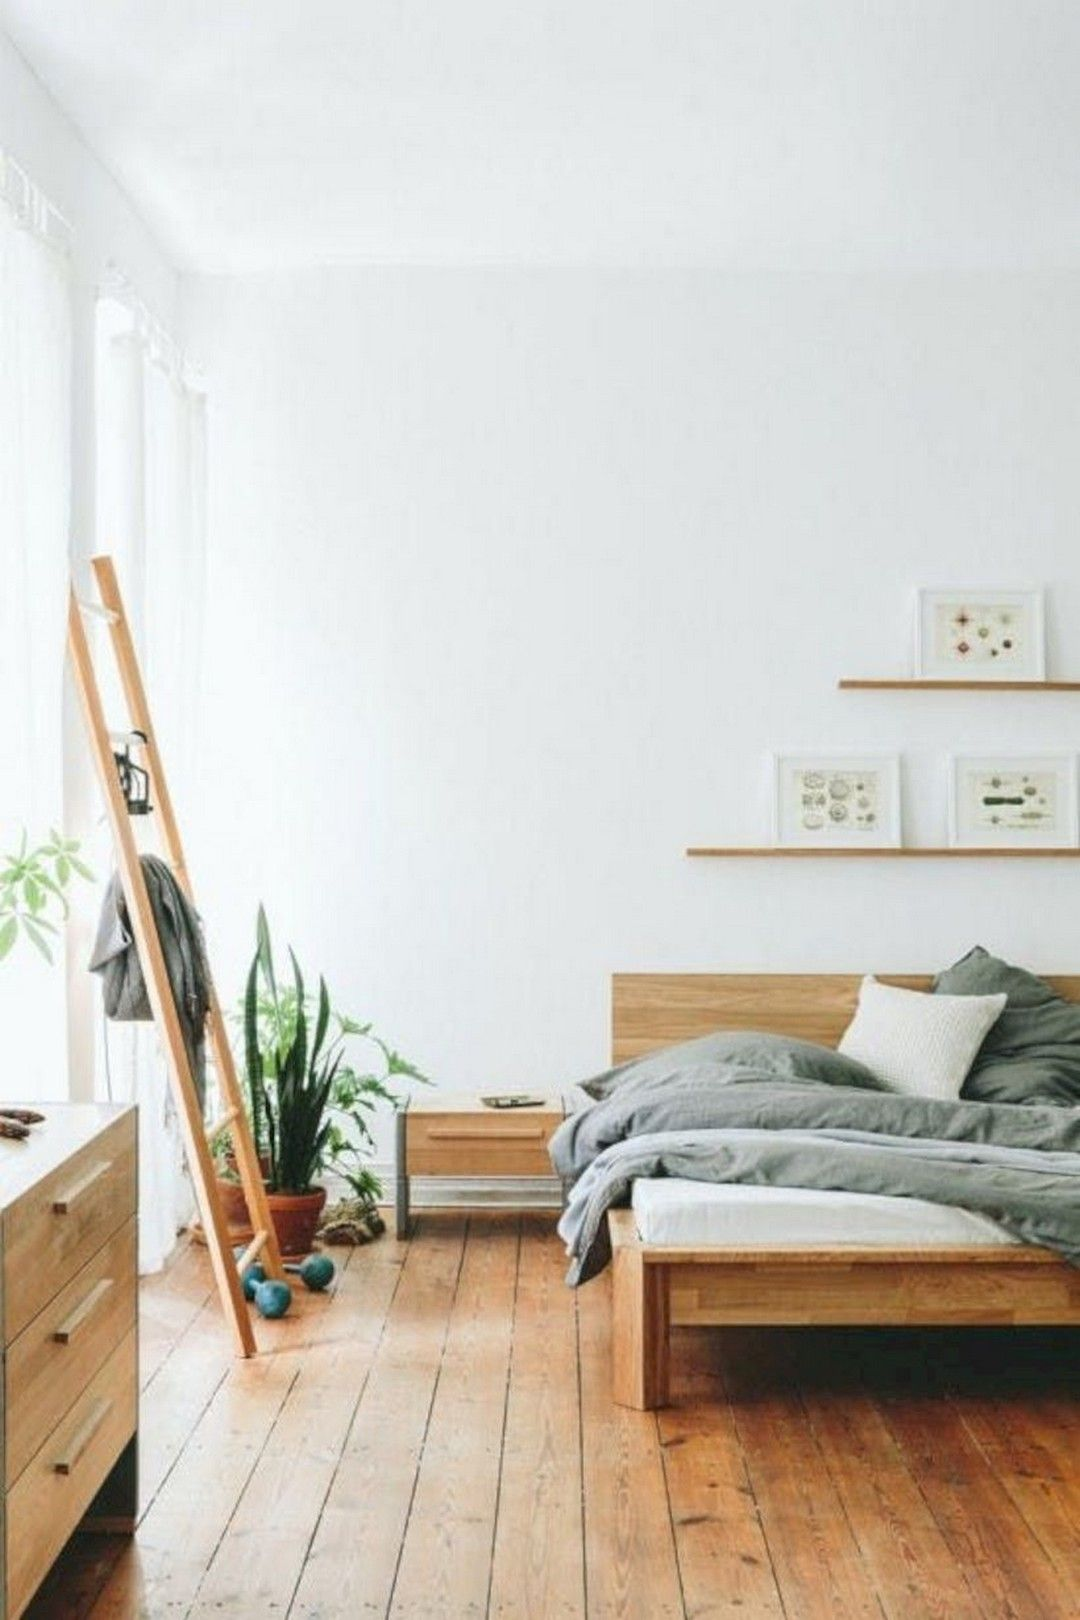 Minimalist And Scandinavian Inspired Bedroom In Natural Colors With A Warm Wooden Floor Minimalist Bedroom Decor Simple Bedroom Design Bedroom Design Trends Latest minimalist wooden bedroom